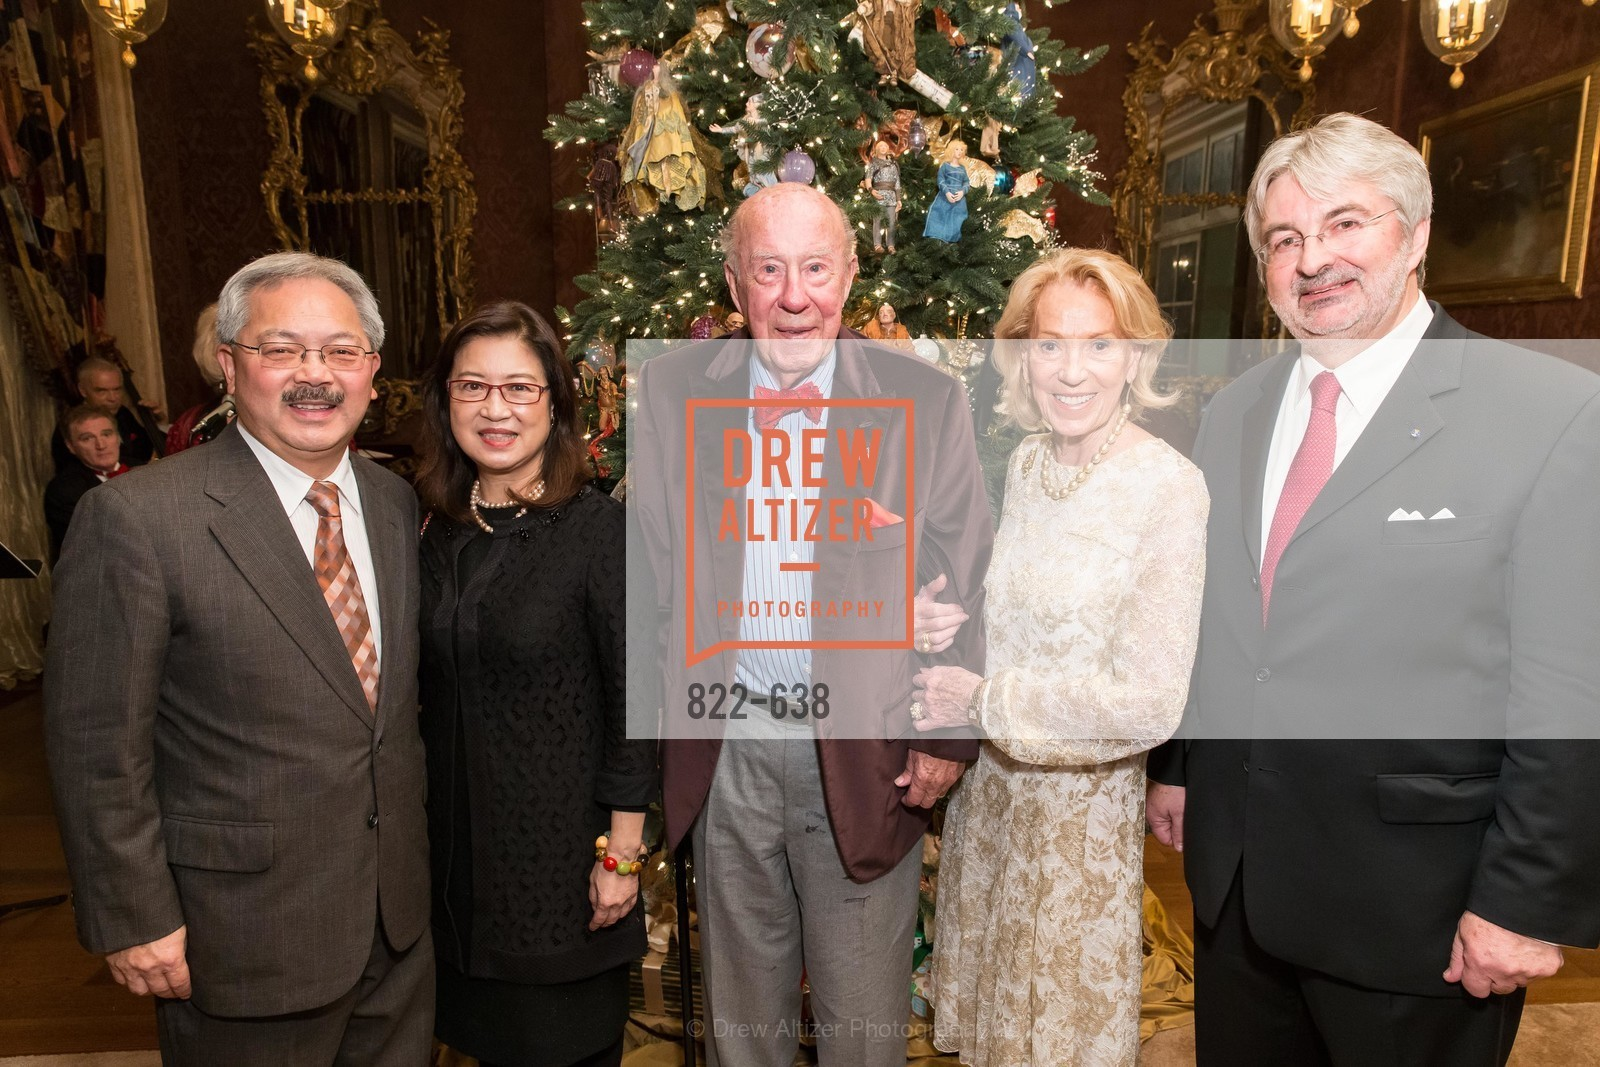 Ed Lee, Anita Lee, George Shultz, Charlotte Shultz, George Schmit, San Francisco Mayor's Office of Protocol Christmas Party, Private Residence, December 9th, 2015,Drew Altizer, Drew Altizer Photography, full-service event agency, private events, San Francisco photographer, photographer California